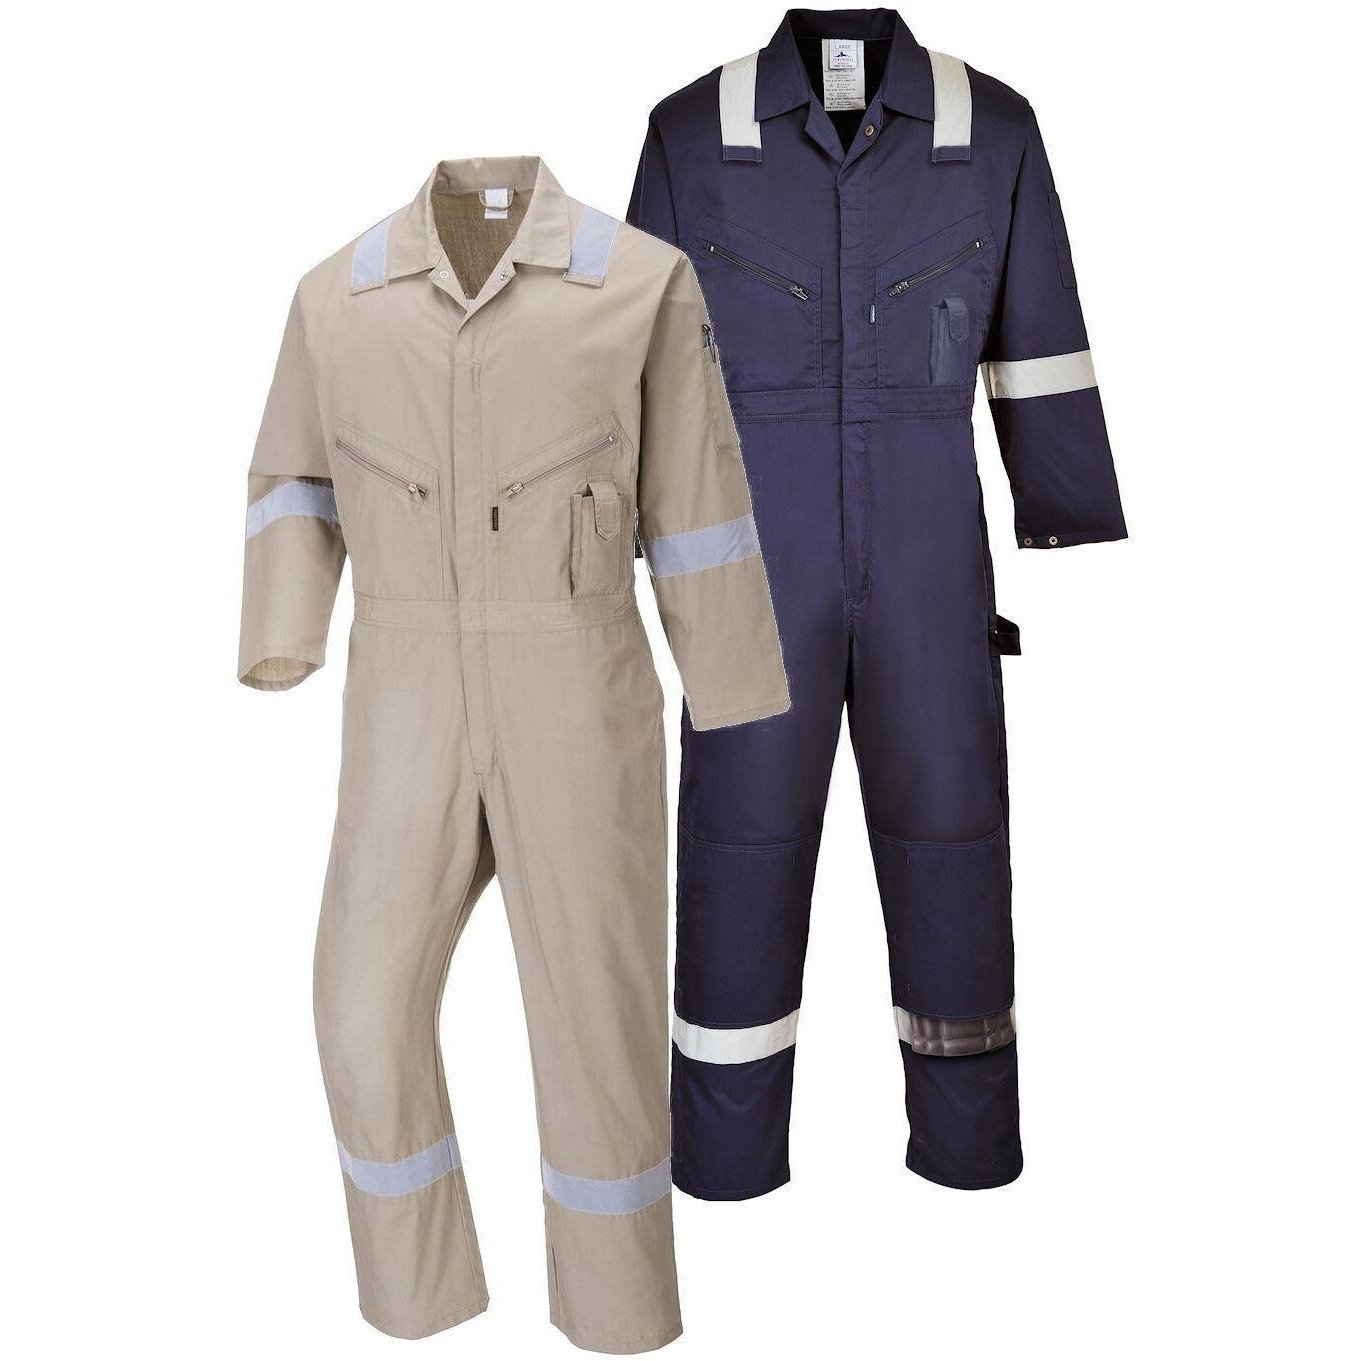 Portwest Iona Cotton Coverall C814 - reid outdoors